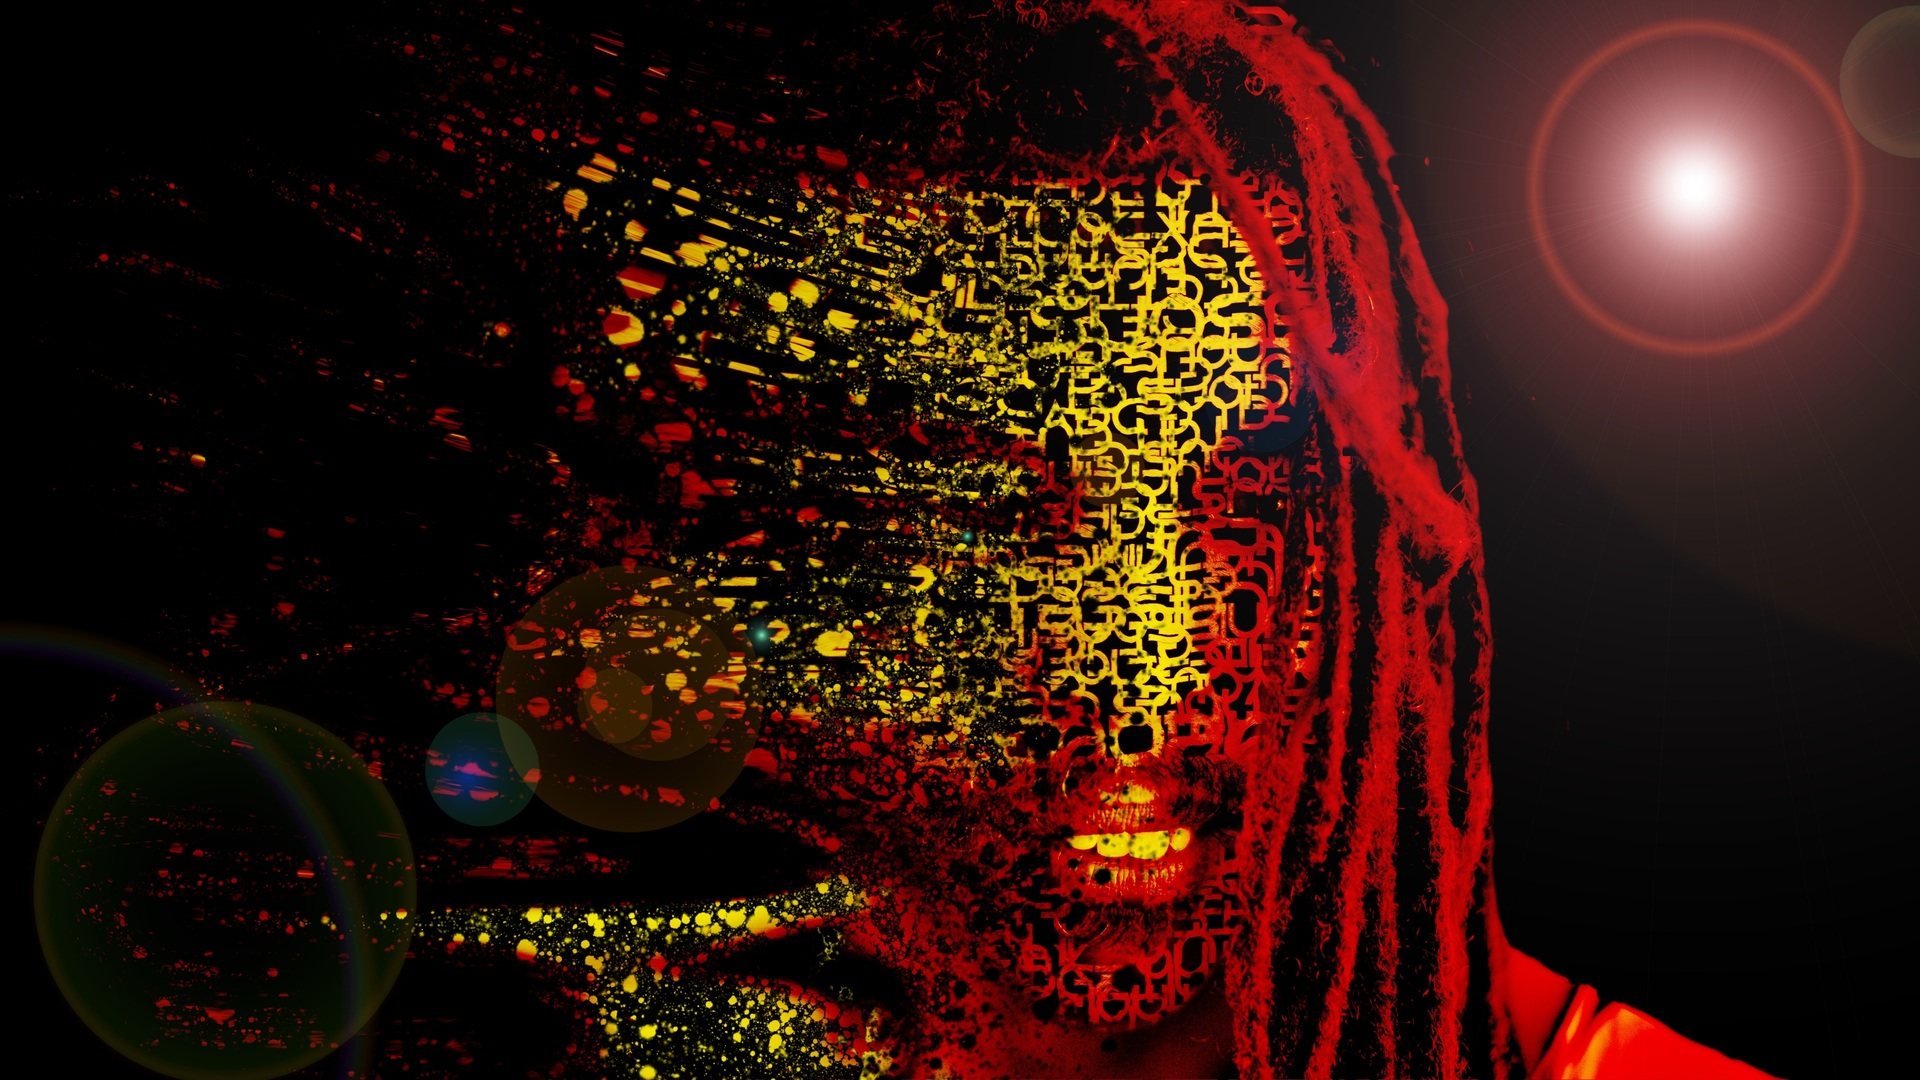 1920x1080 bob marley mask abstract artwork 4k laptop full hd 1080p hd 4k wallpapers images - Background images 4k hd ...